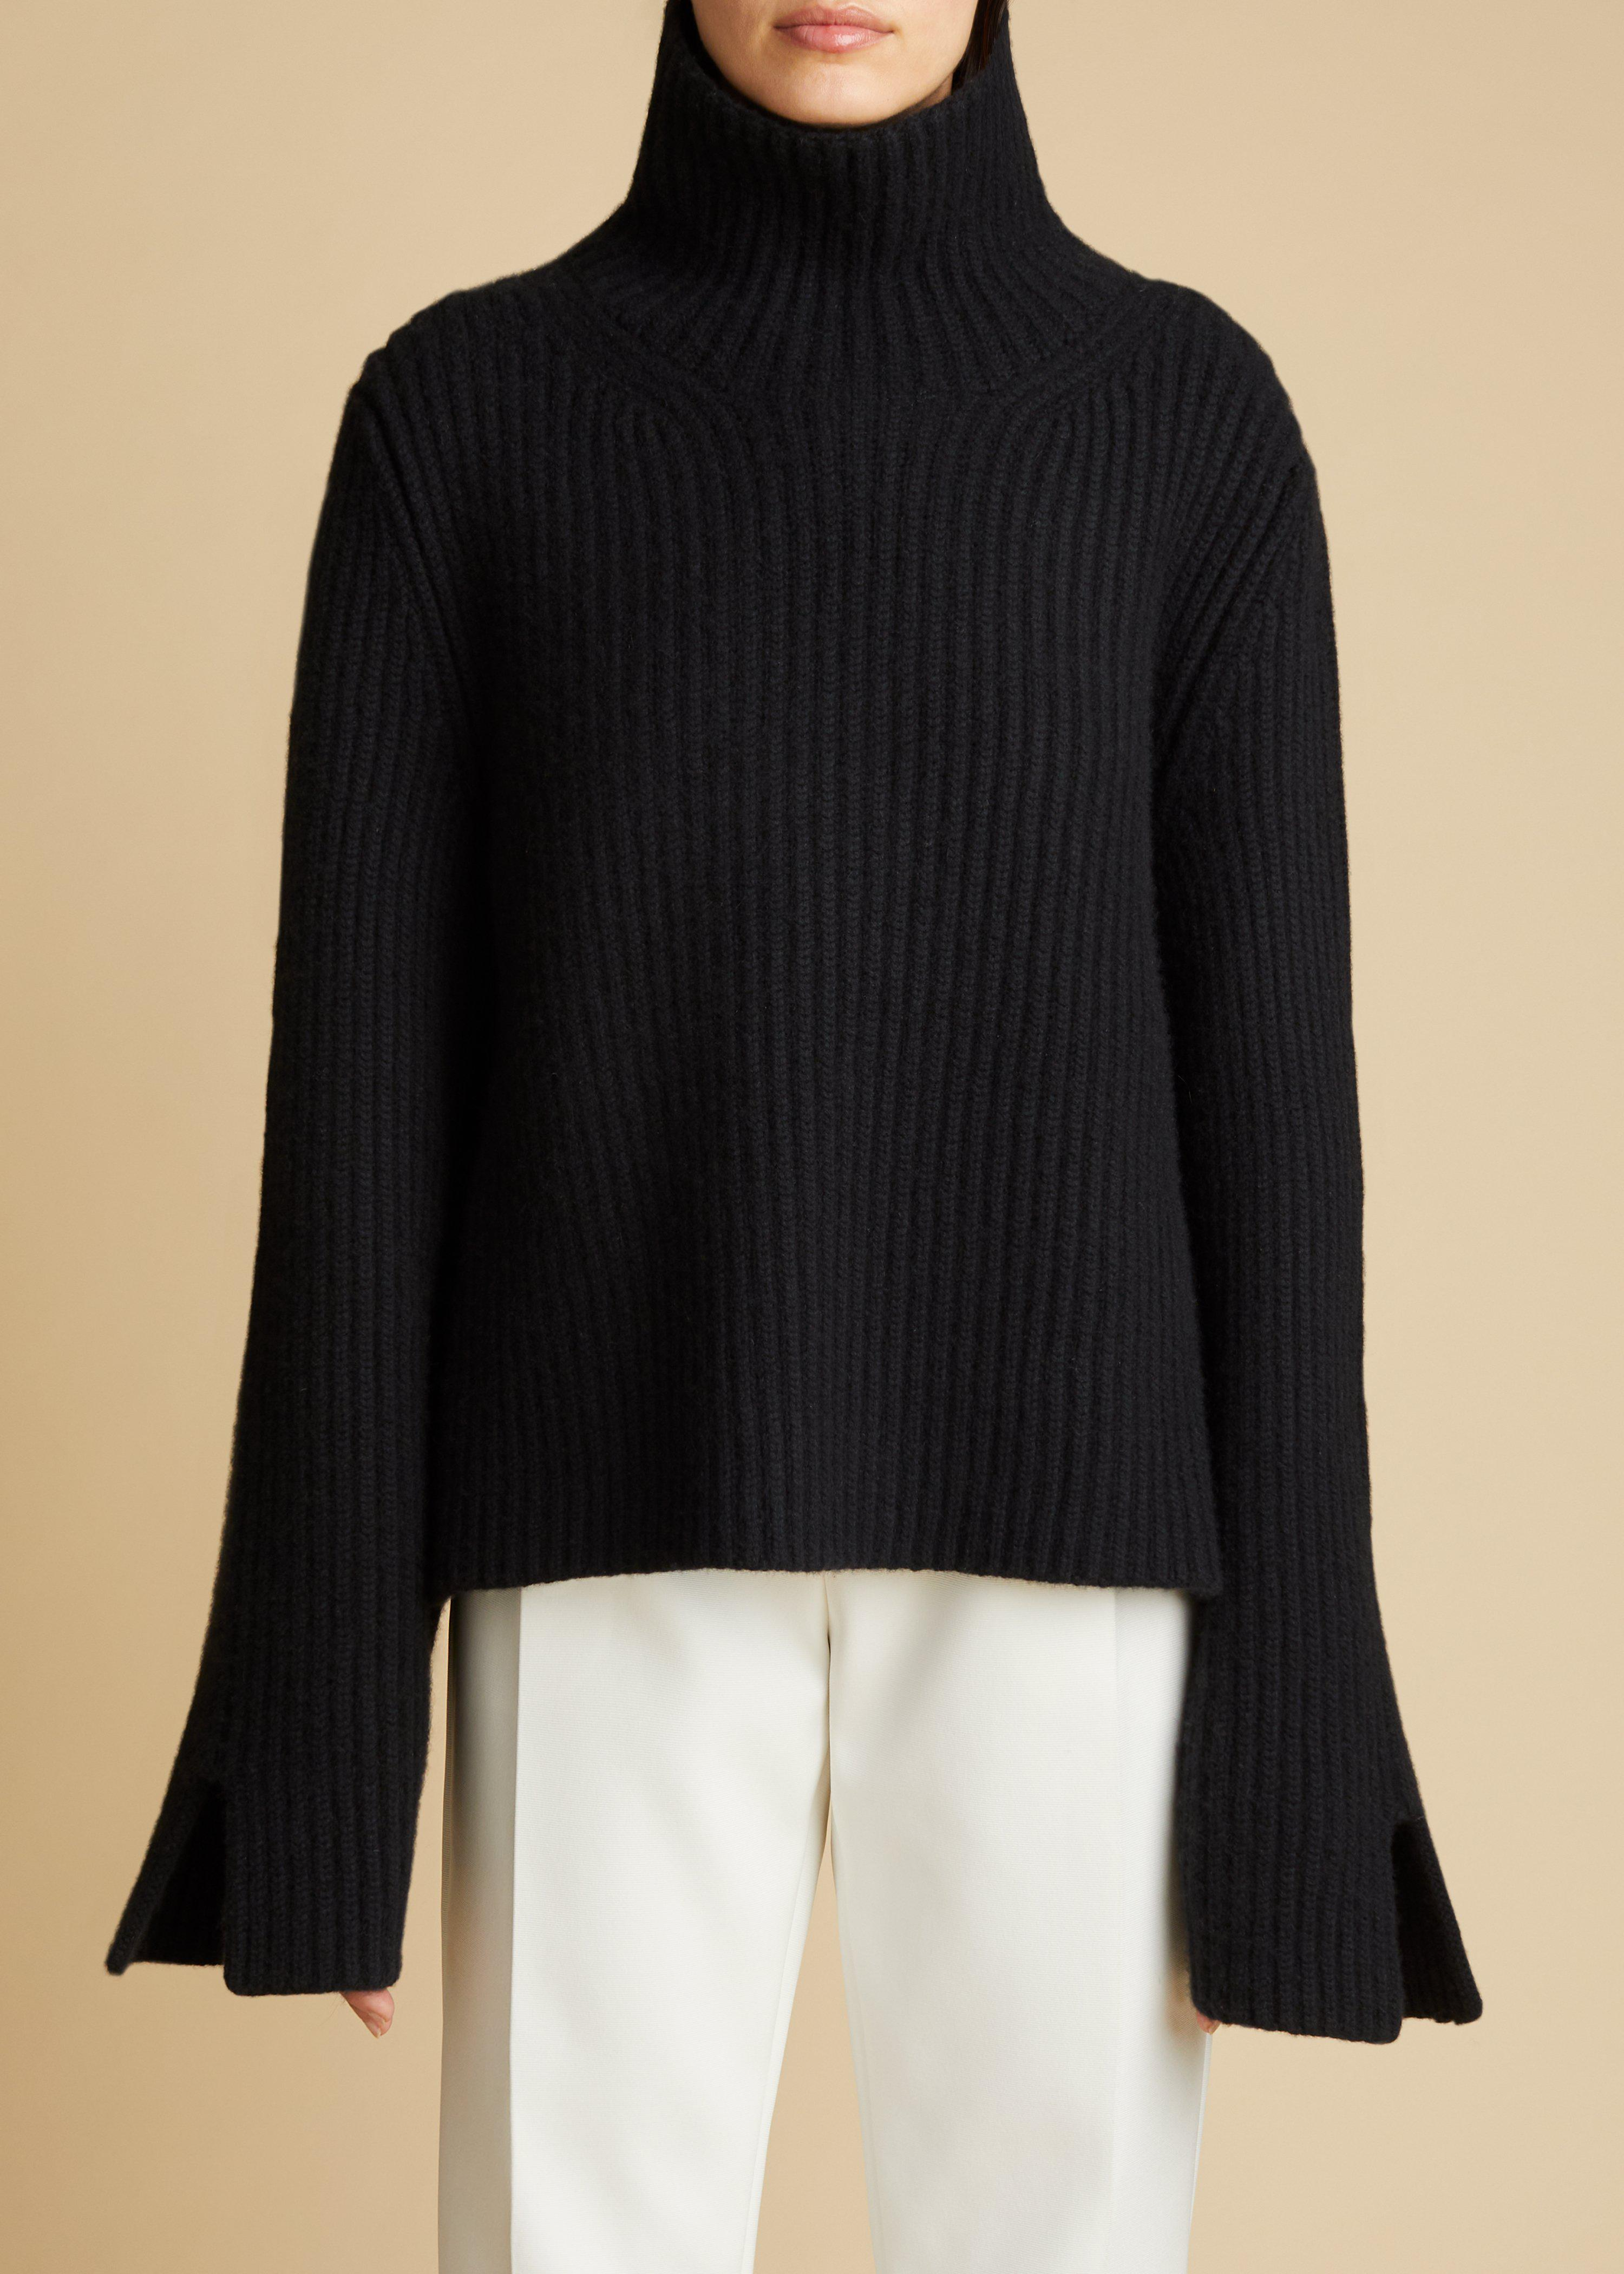 The Molly Sweater in Black